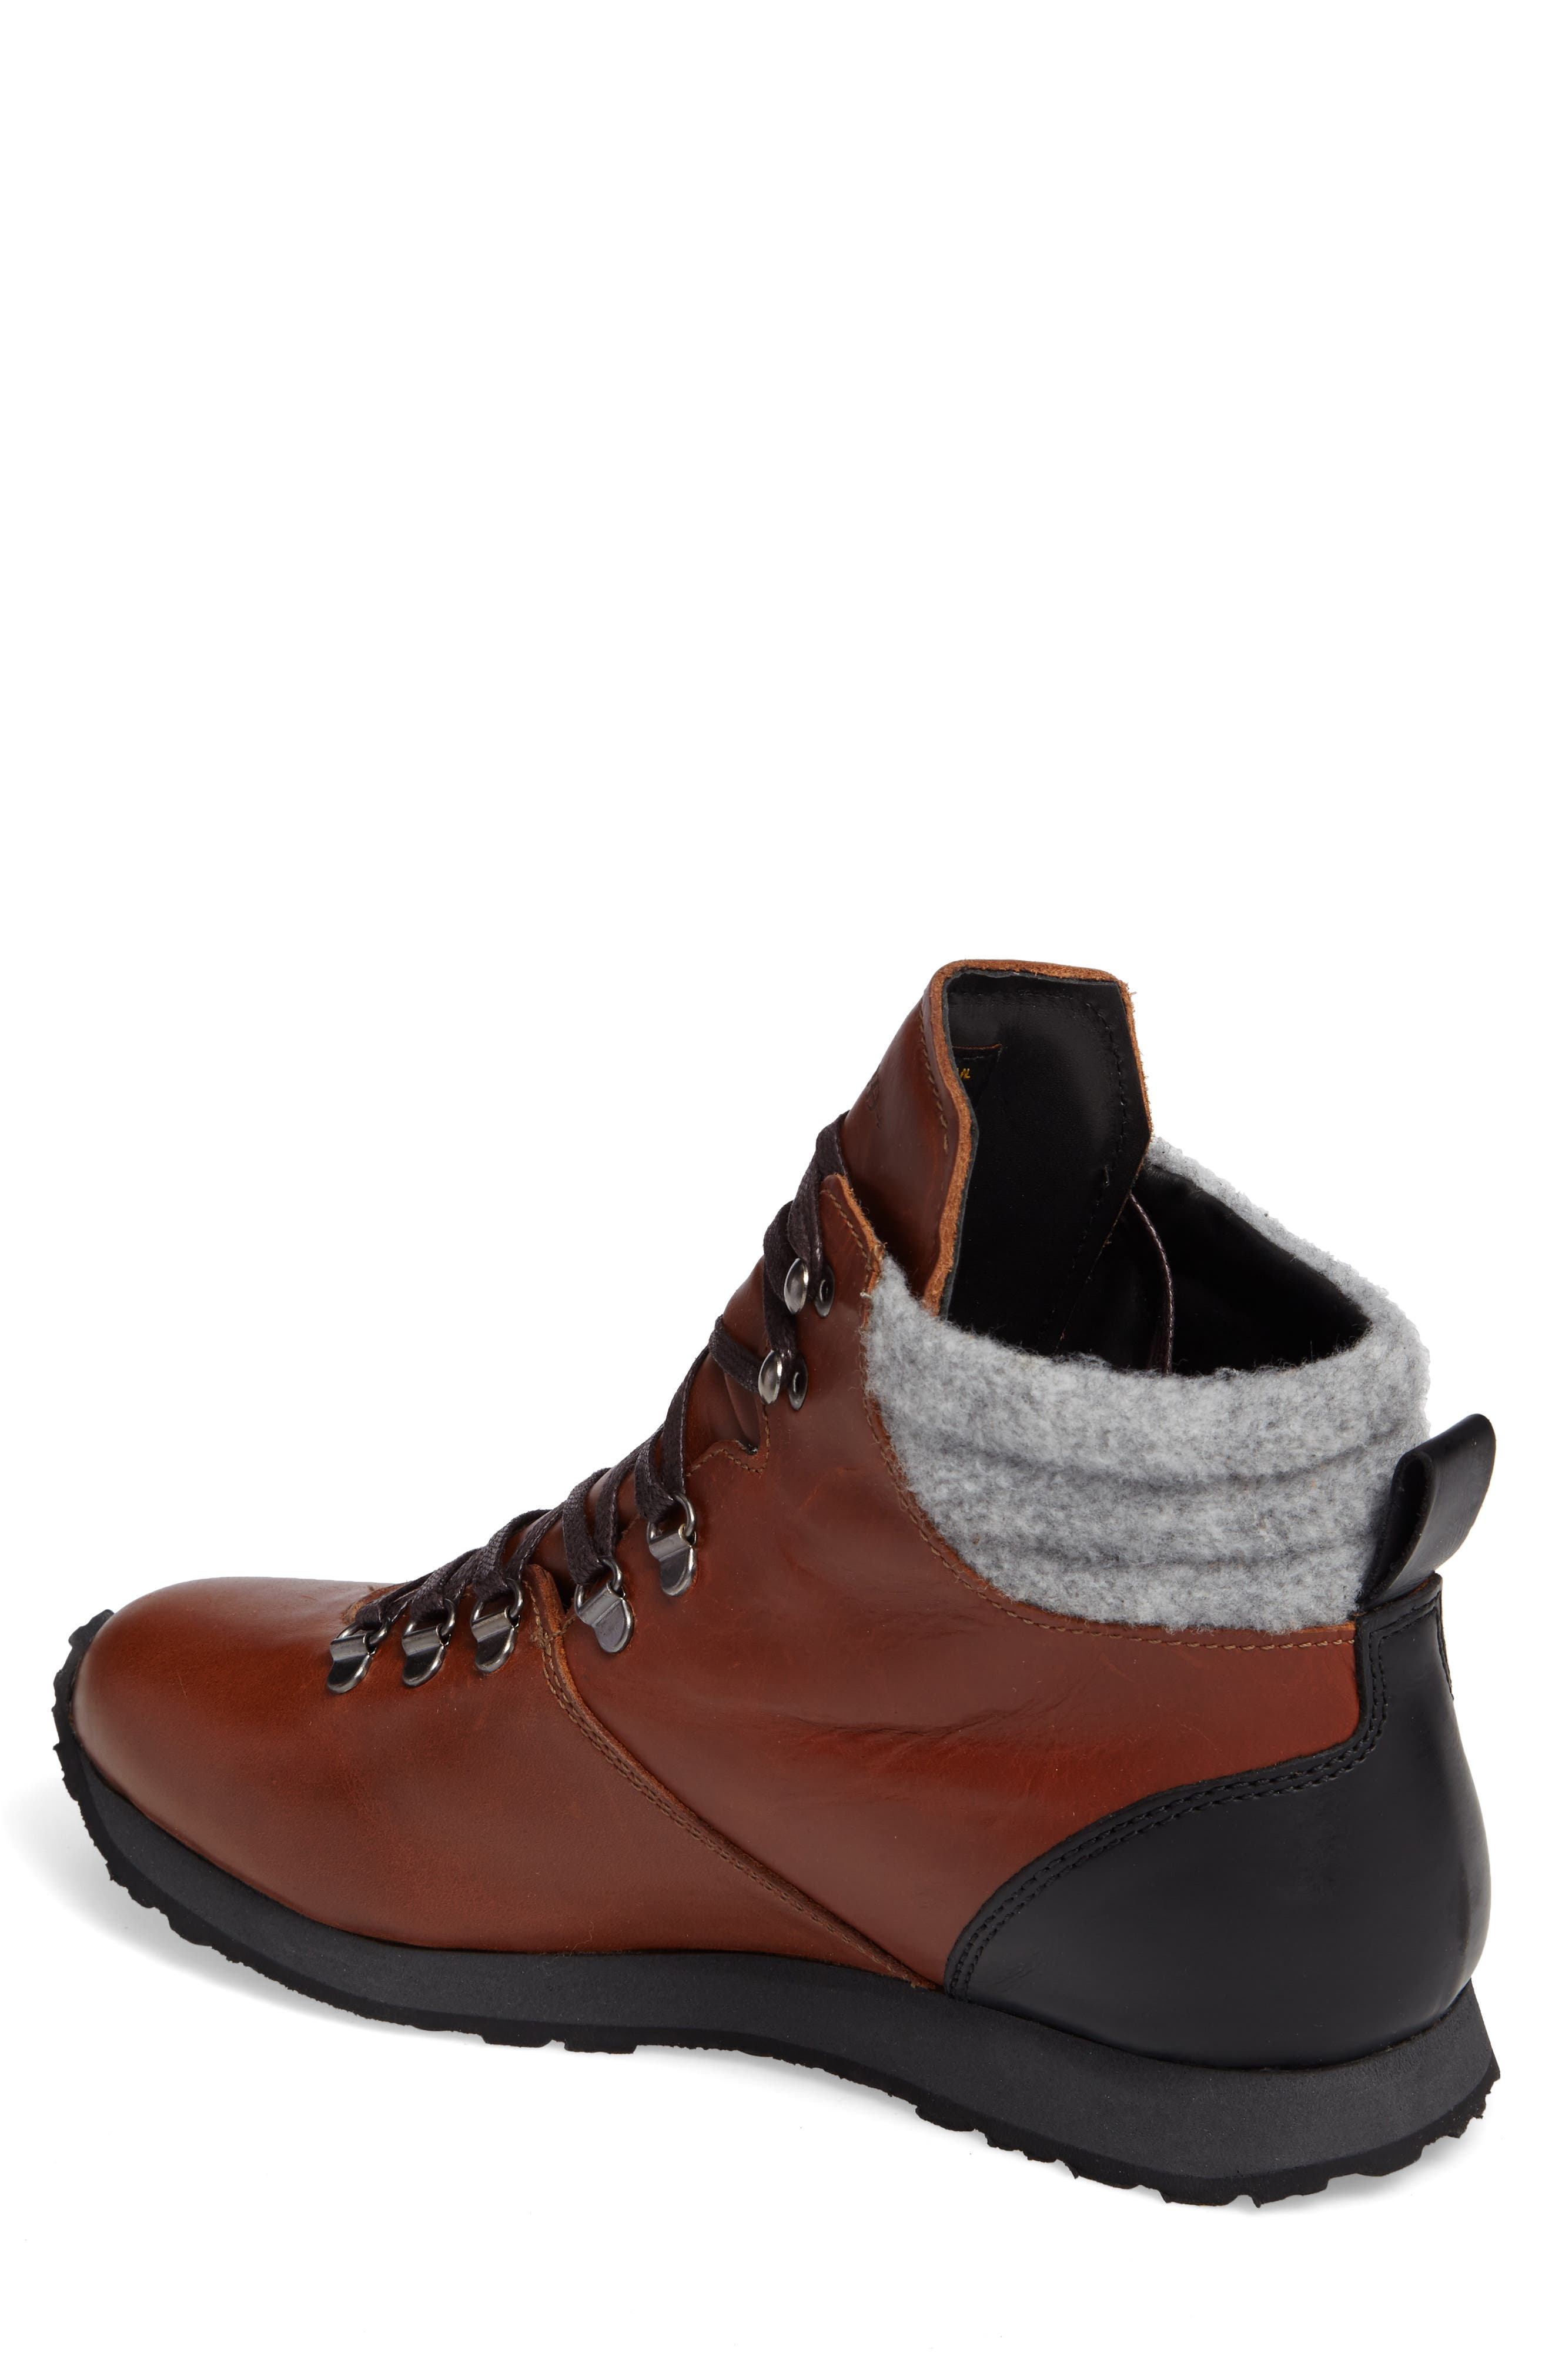 Concord Mid Top Wool Cuffed Waterproof Boot,                             Alternate thumbnail 4, color,